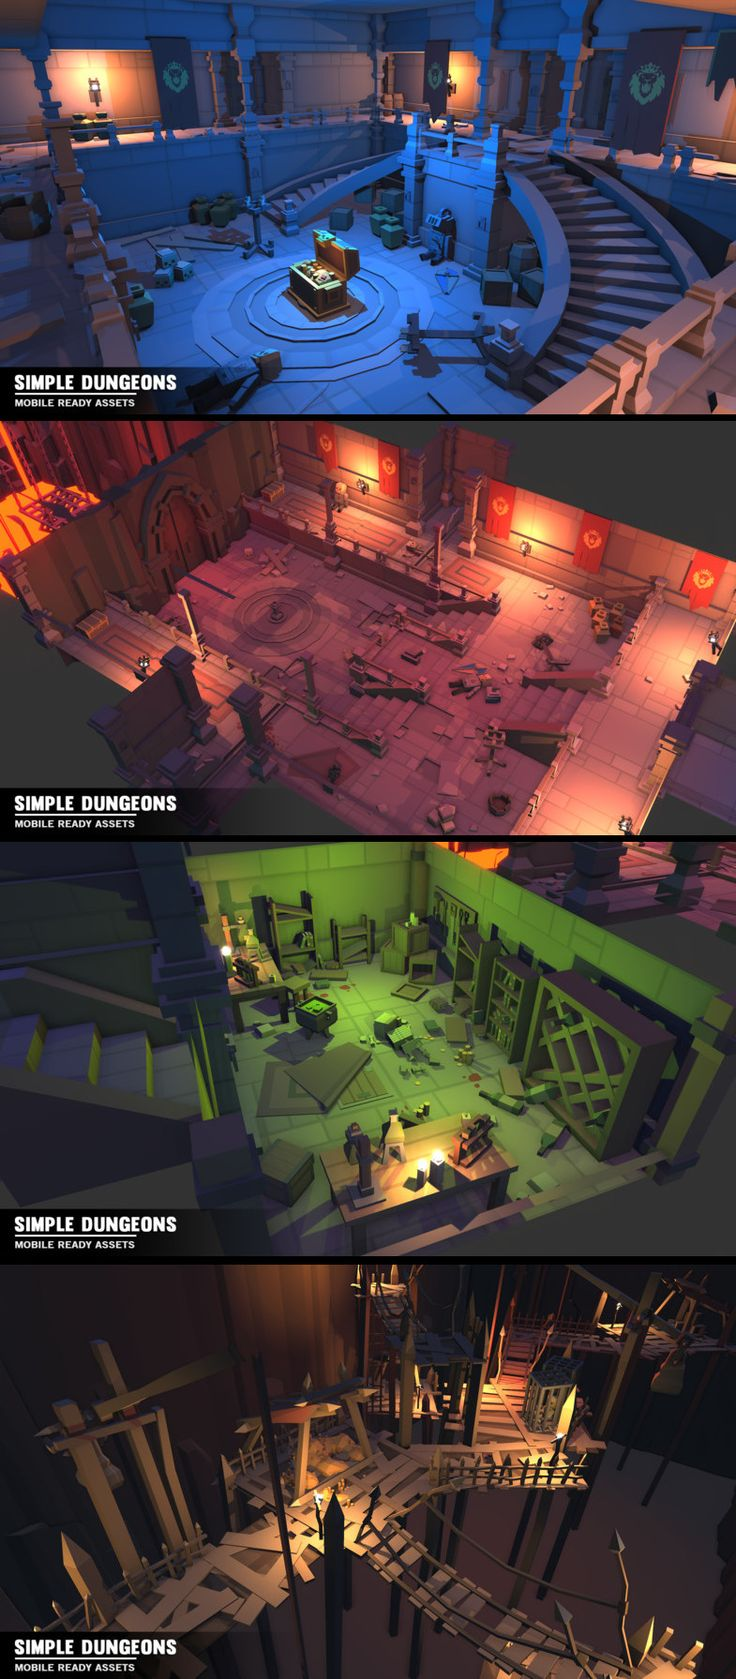 Simple Dungeon Interiors - Cartoon assets A simple asset pack of dungeon interior assets to add to the existing simple assets. Modular sections are easy to piece together in a variety of combinations. Includes demo scene Includes - - Torture room - Crypt - Goblin Cavern - Science Lab - Treasure Room - Dungeon Cells - Majestic Hall - Trap hallway - Mine/Cave sections - Lava Pit